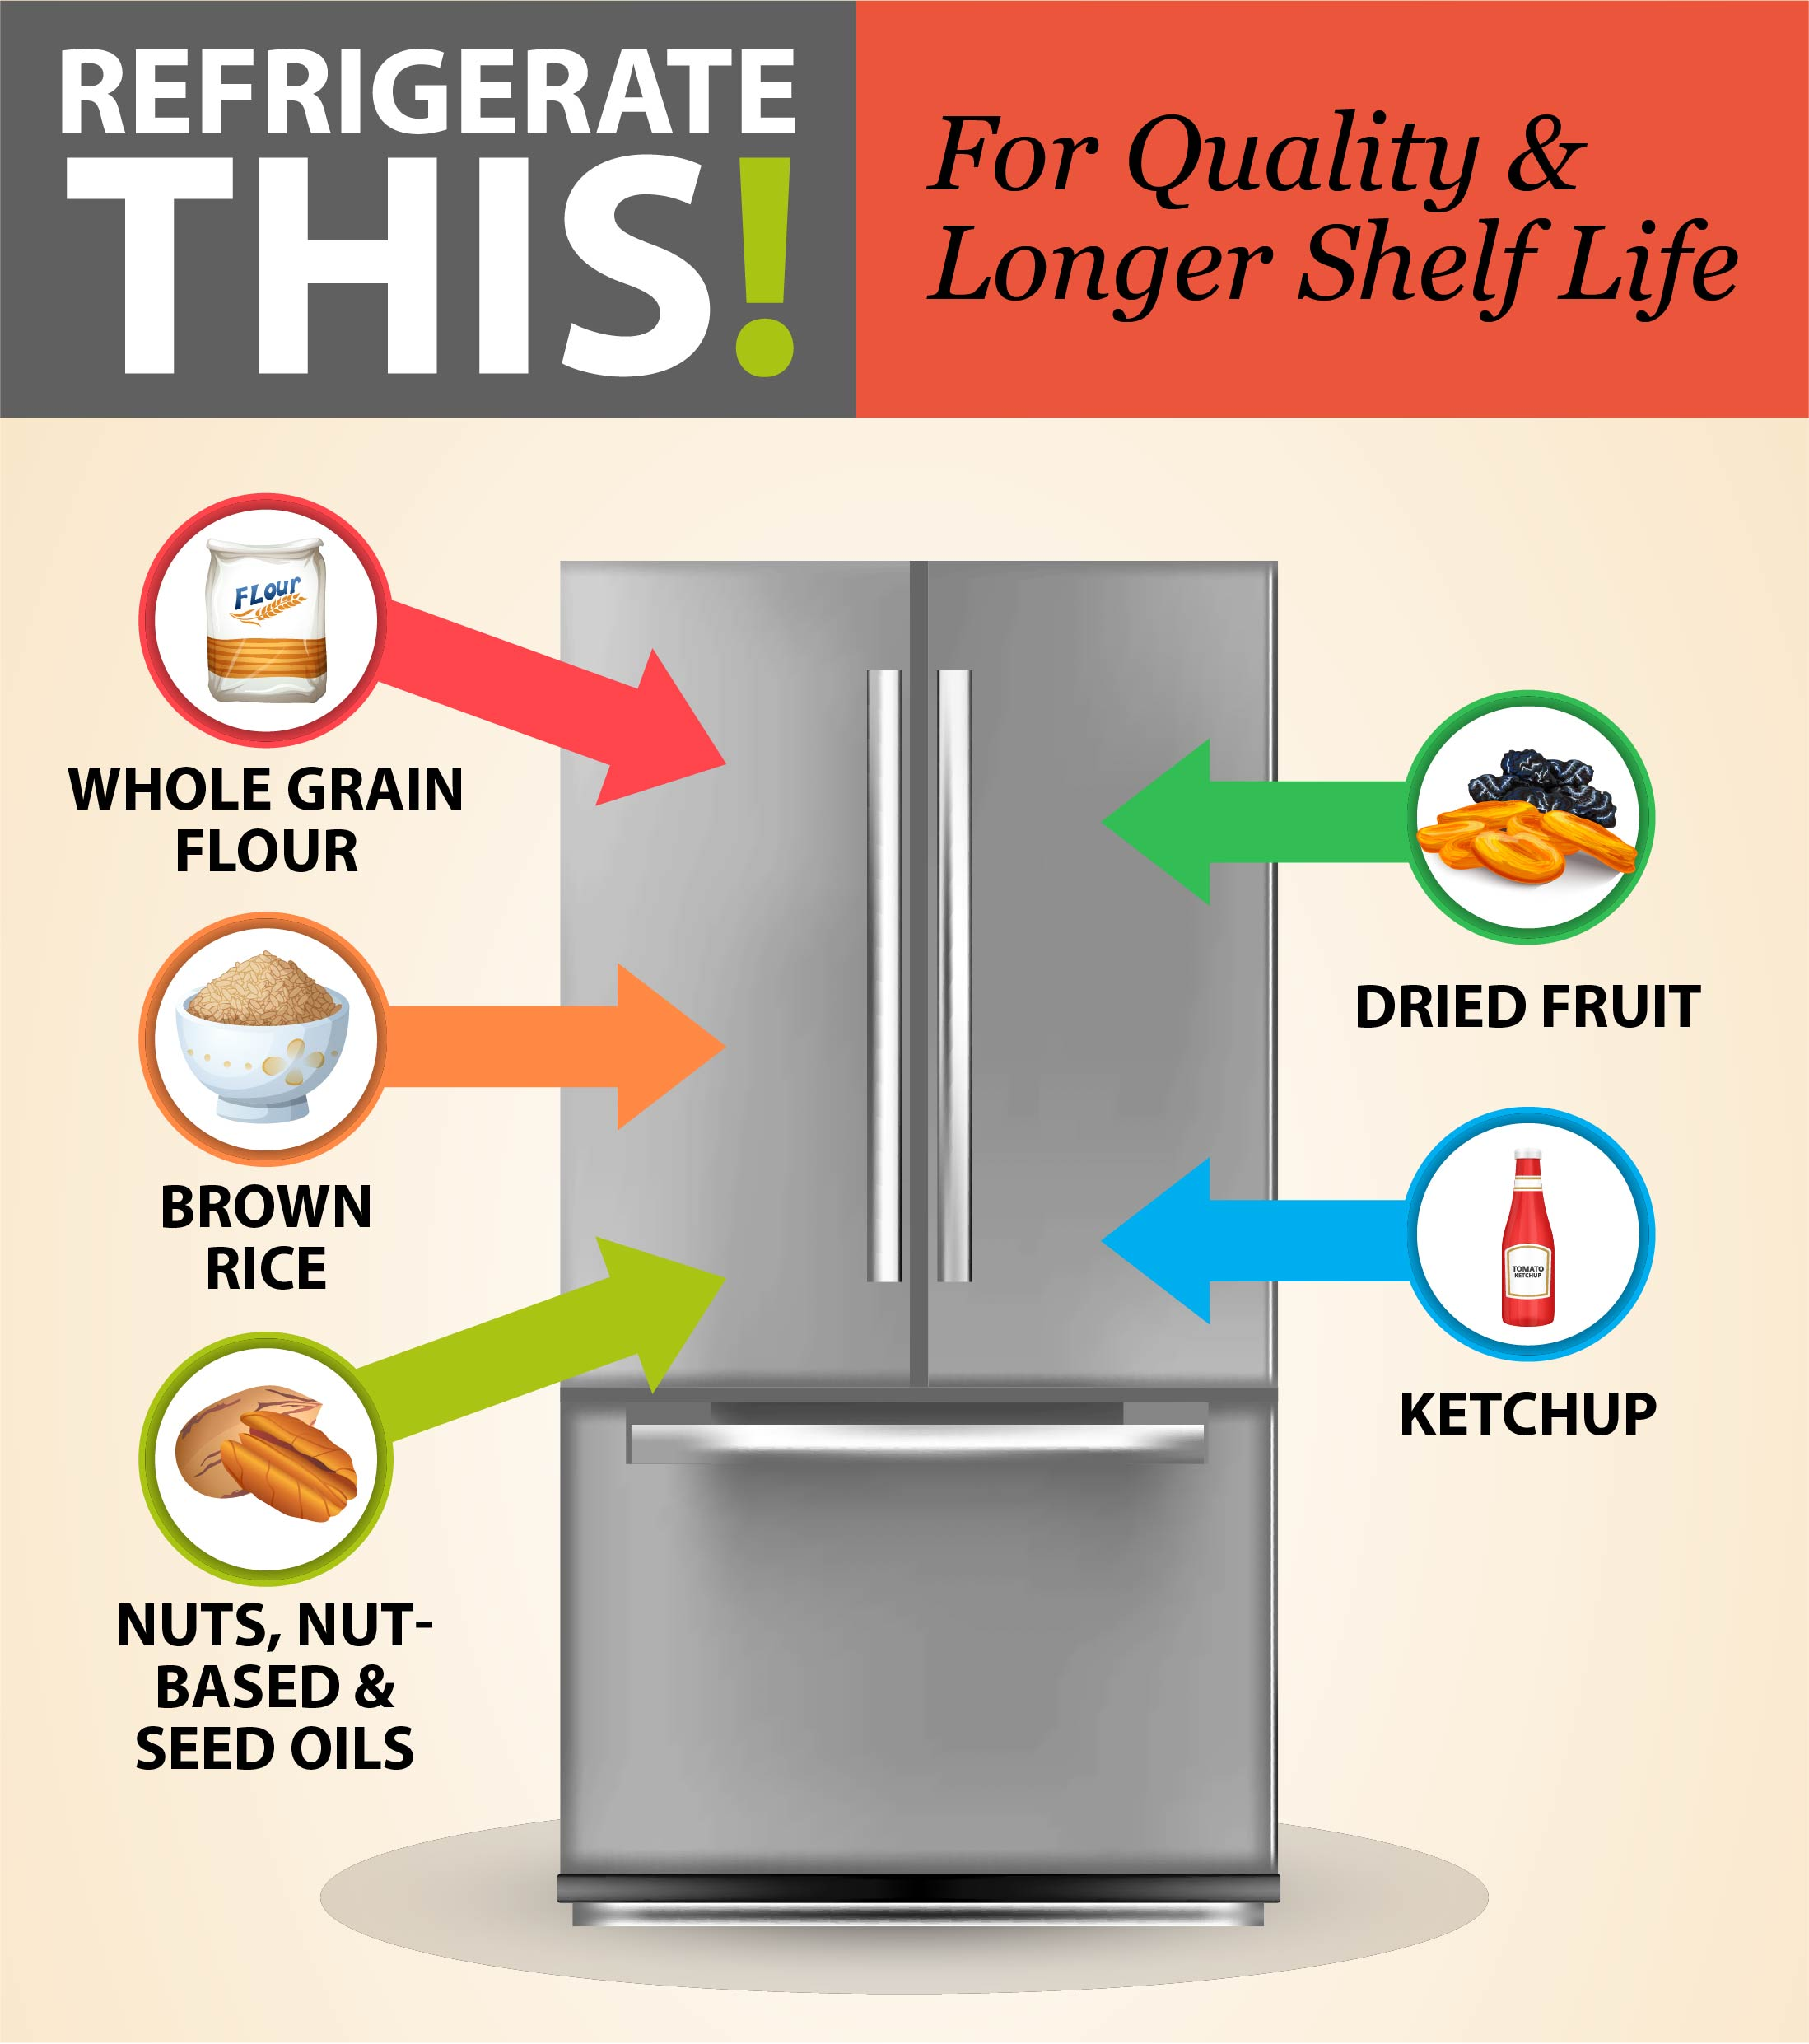 Refrigerate this! For quality and longer shelf life: whole grain flour, brown rice, nuts, nut-based and seed-based oils, dried fruit, and ketchup.